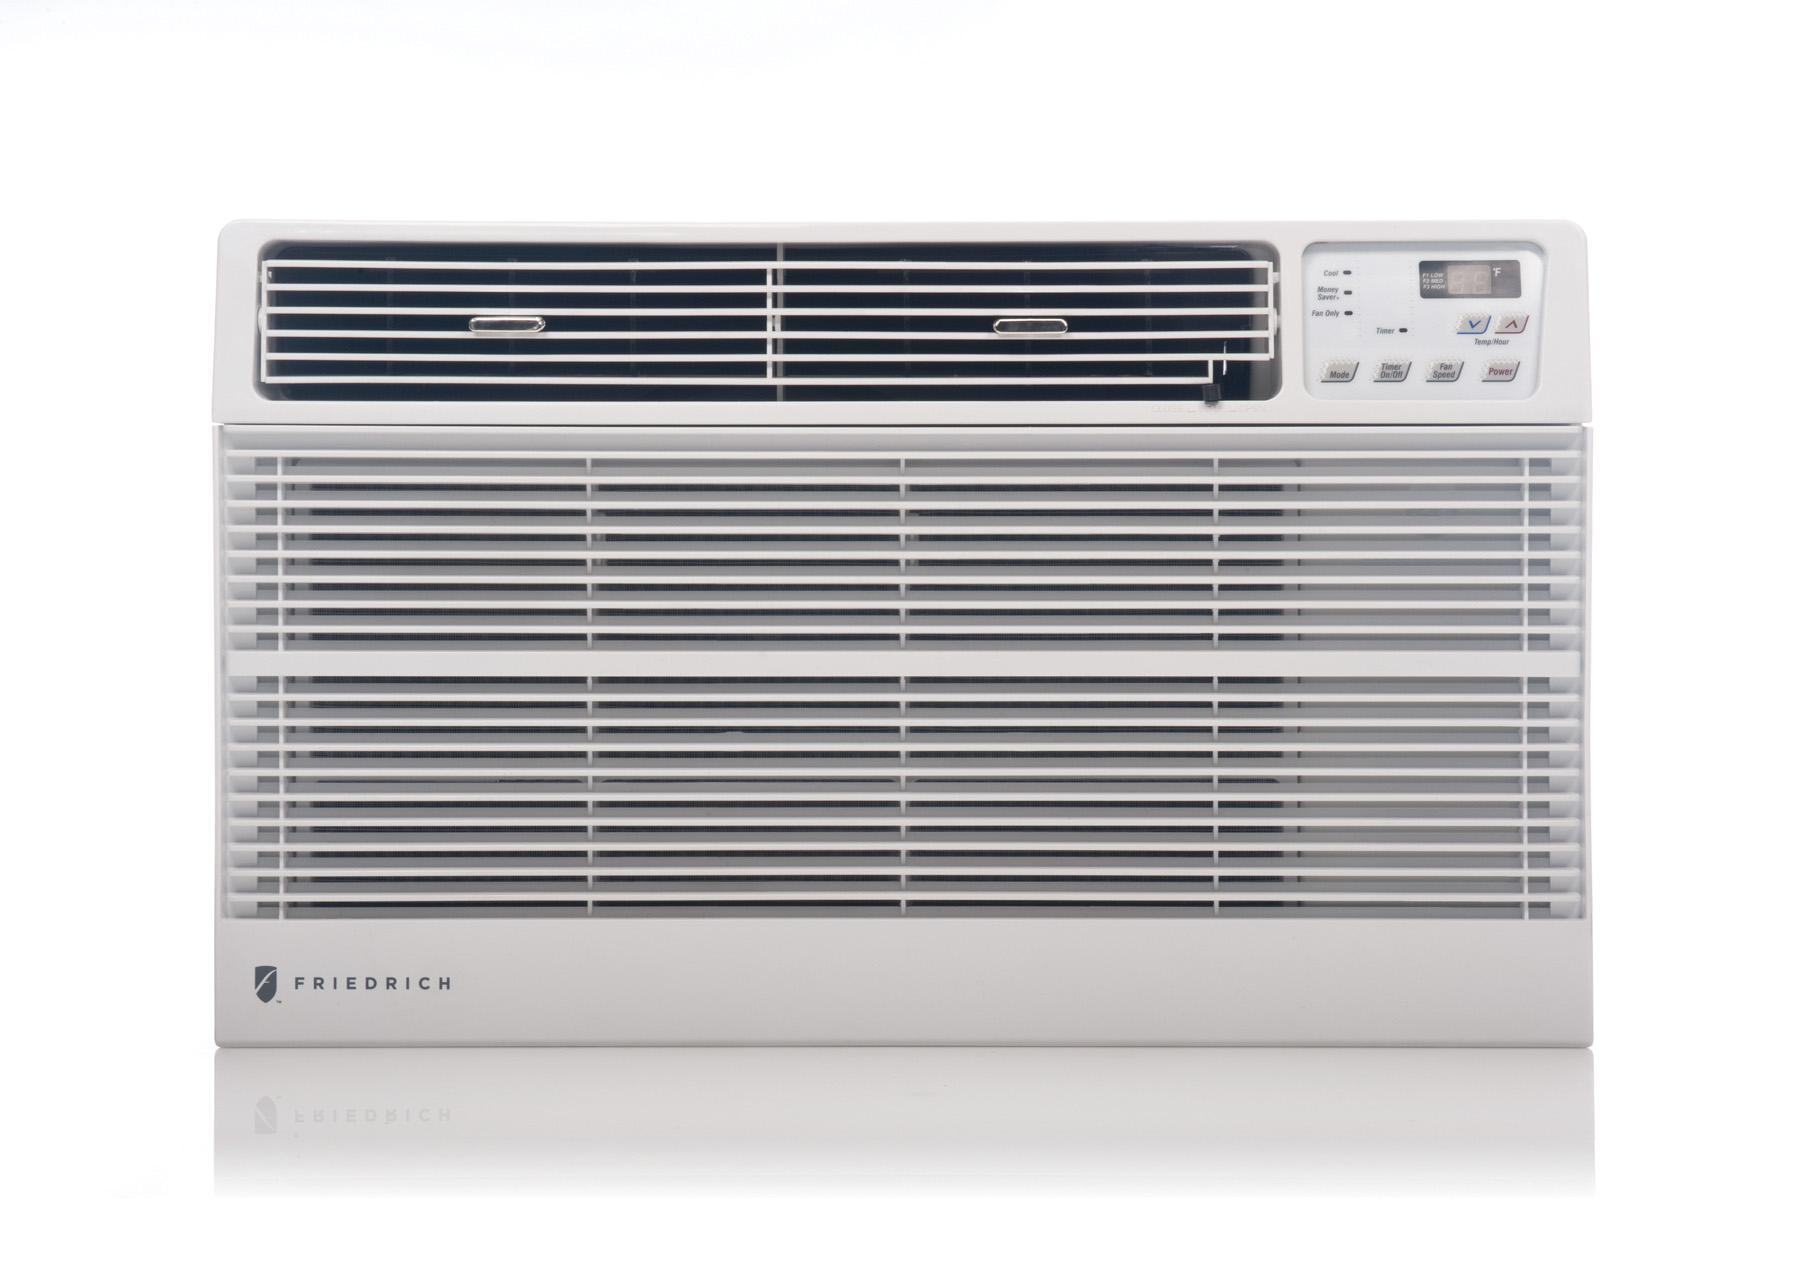 Galanz Air Conditioner Service Manual Wiring Diagrams as well Who Installs Dehumidifiers in addition Wiring Diagram For A Friedrich Min Split Model Mrm12y1j in addition Trane Ac Diagram in addition Air Conditioner Wiring Diagram Pdf. on friedrich air conditioners wiring diagram